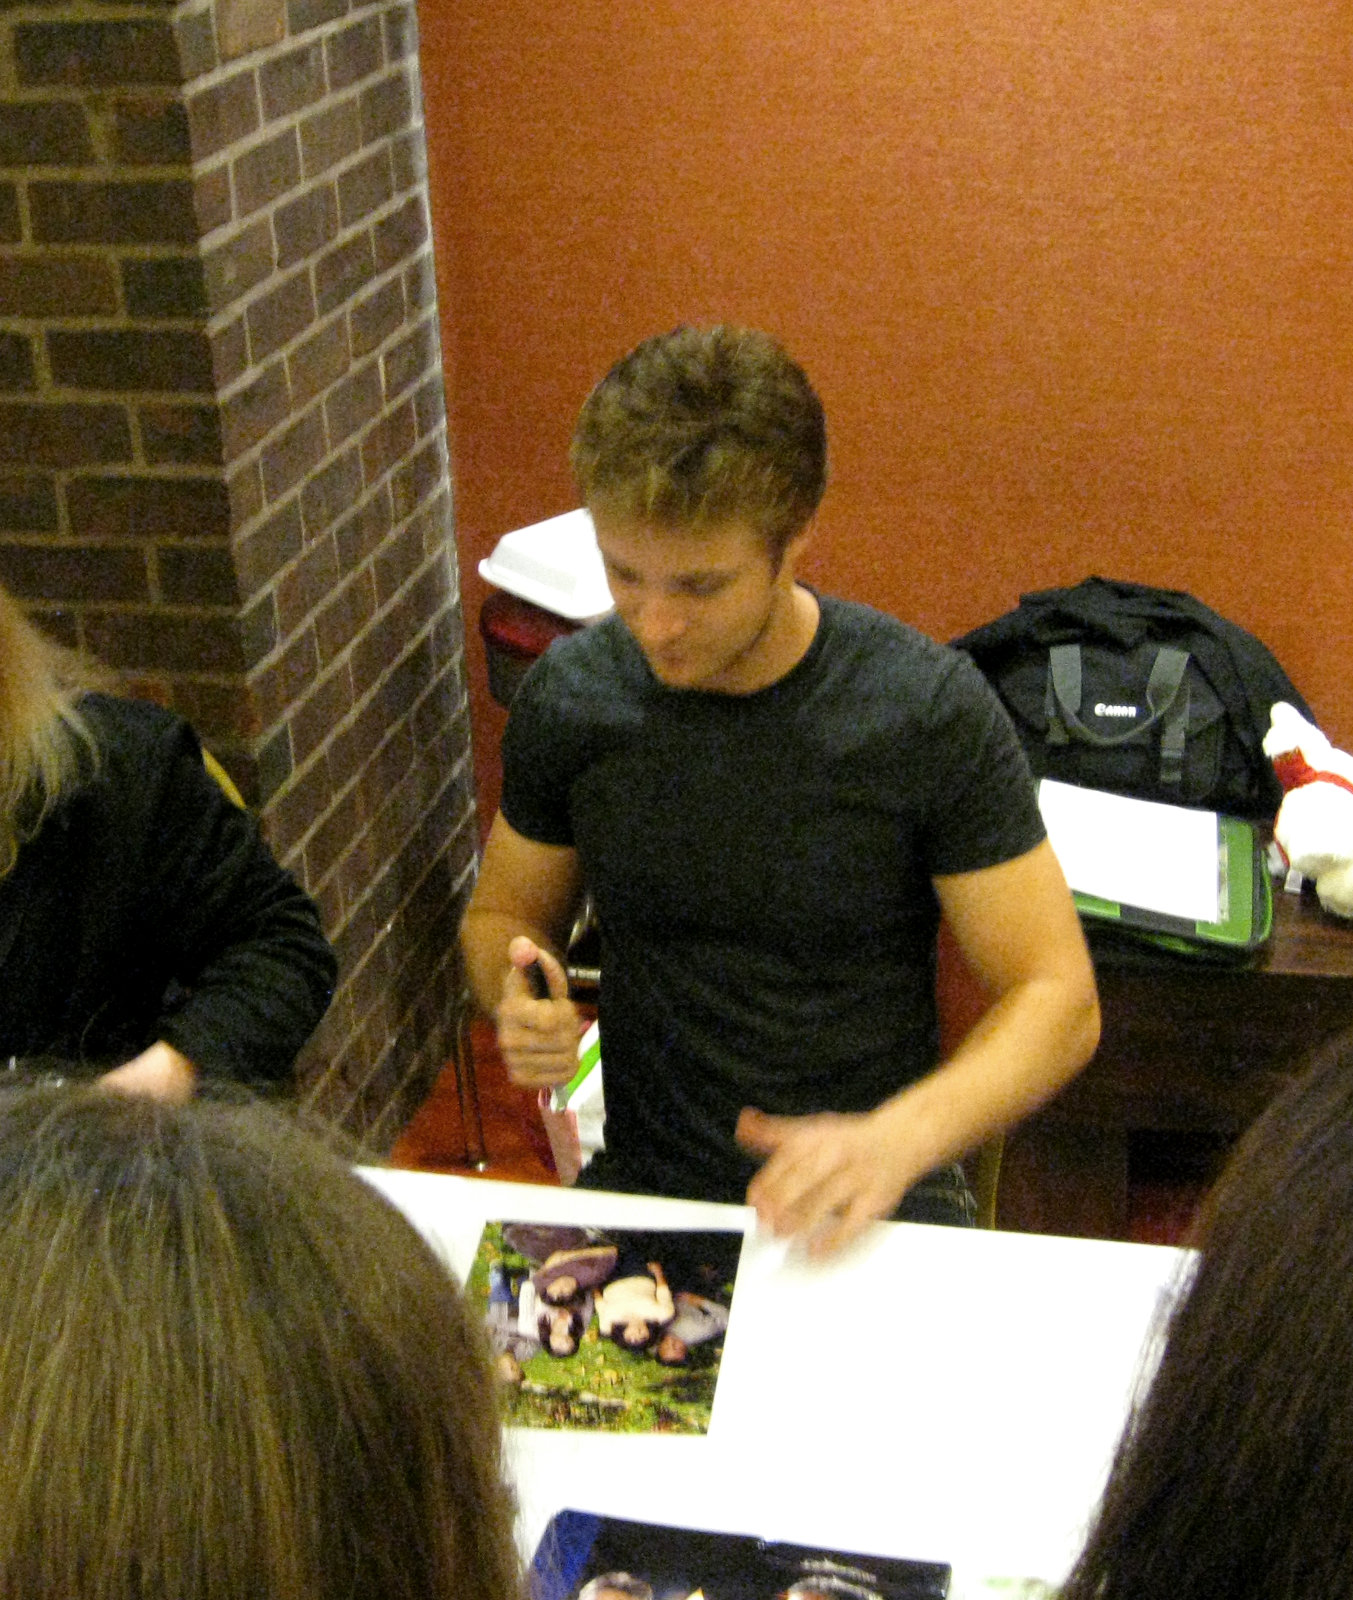 Michael Welch signing a picture from the series Joan of Arcadia